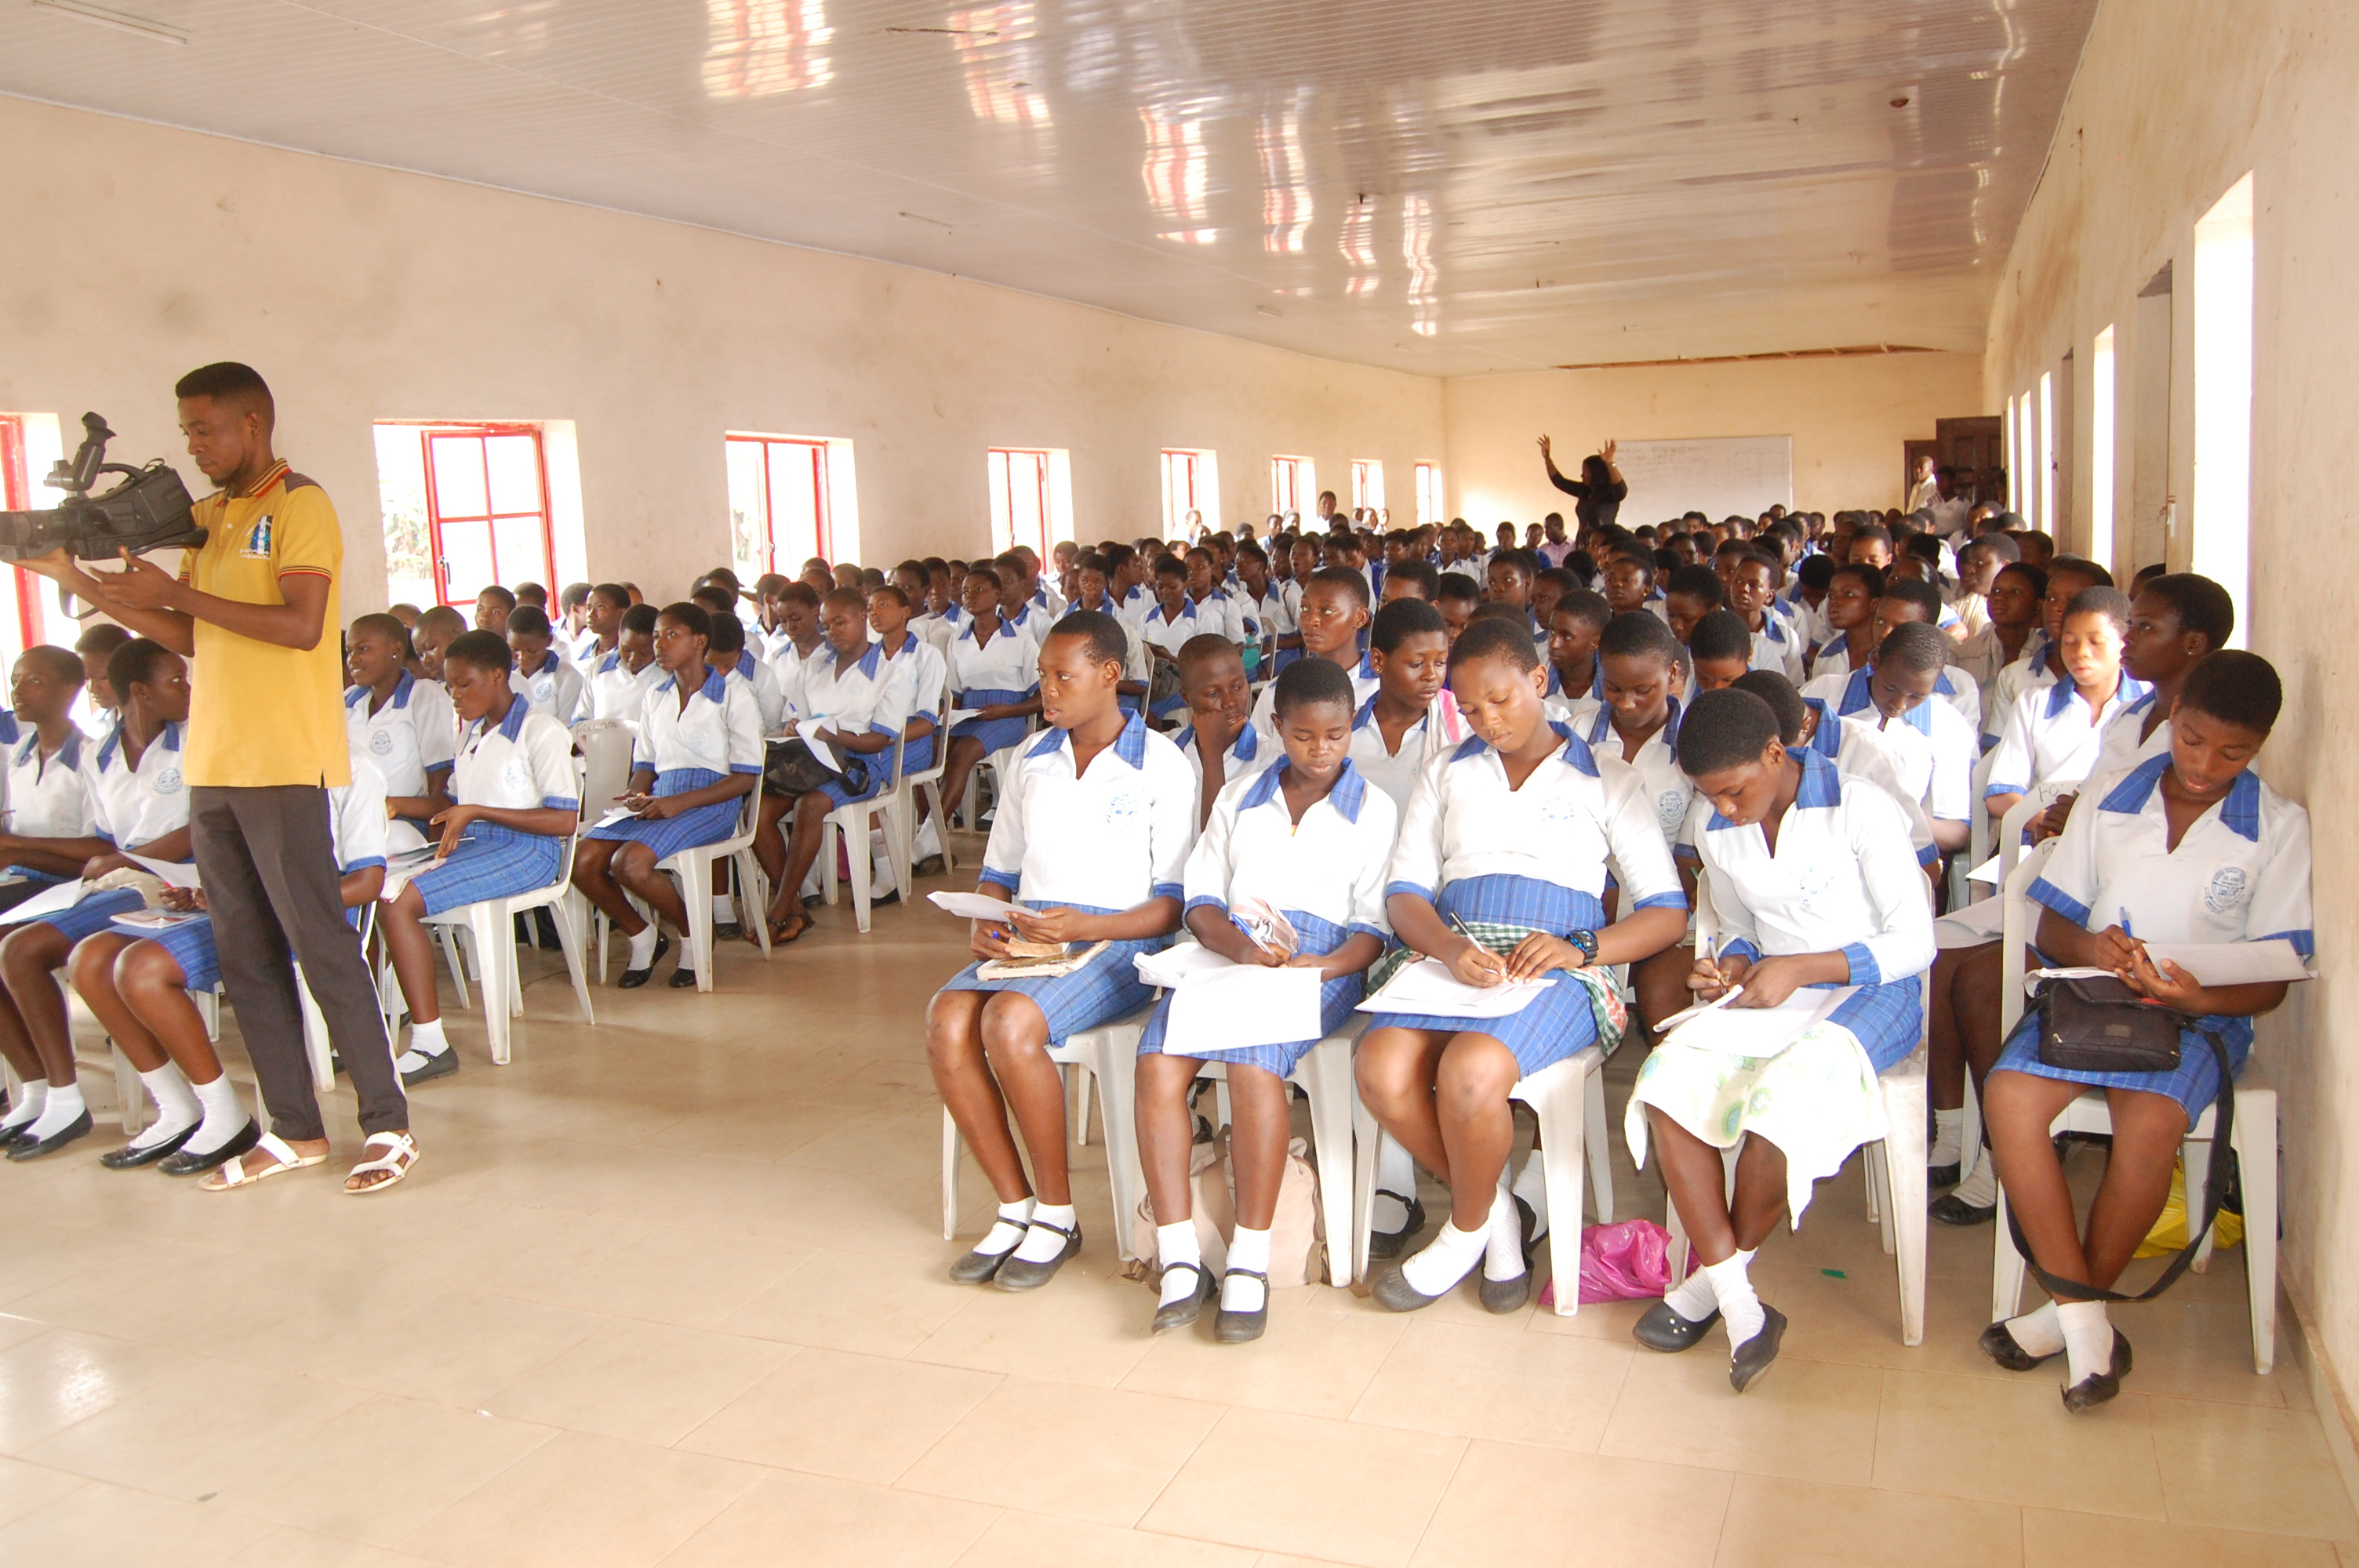 2. Cross sectional view of the students.